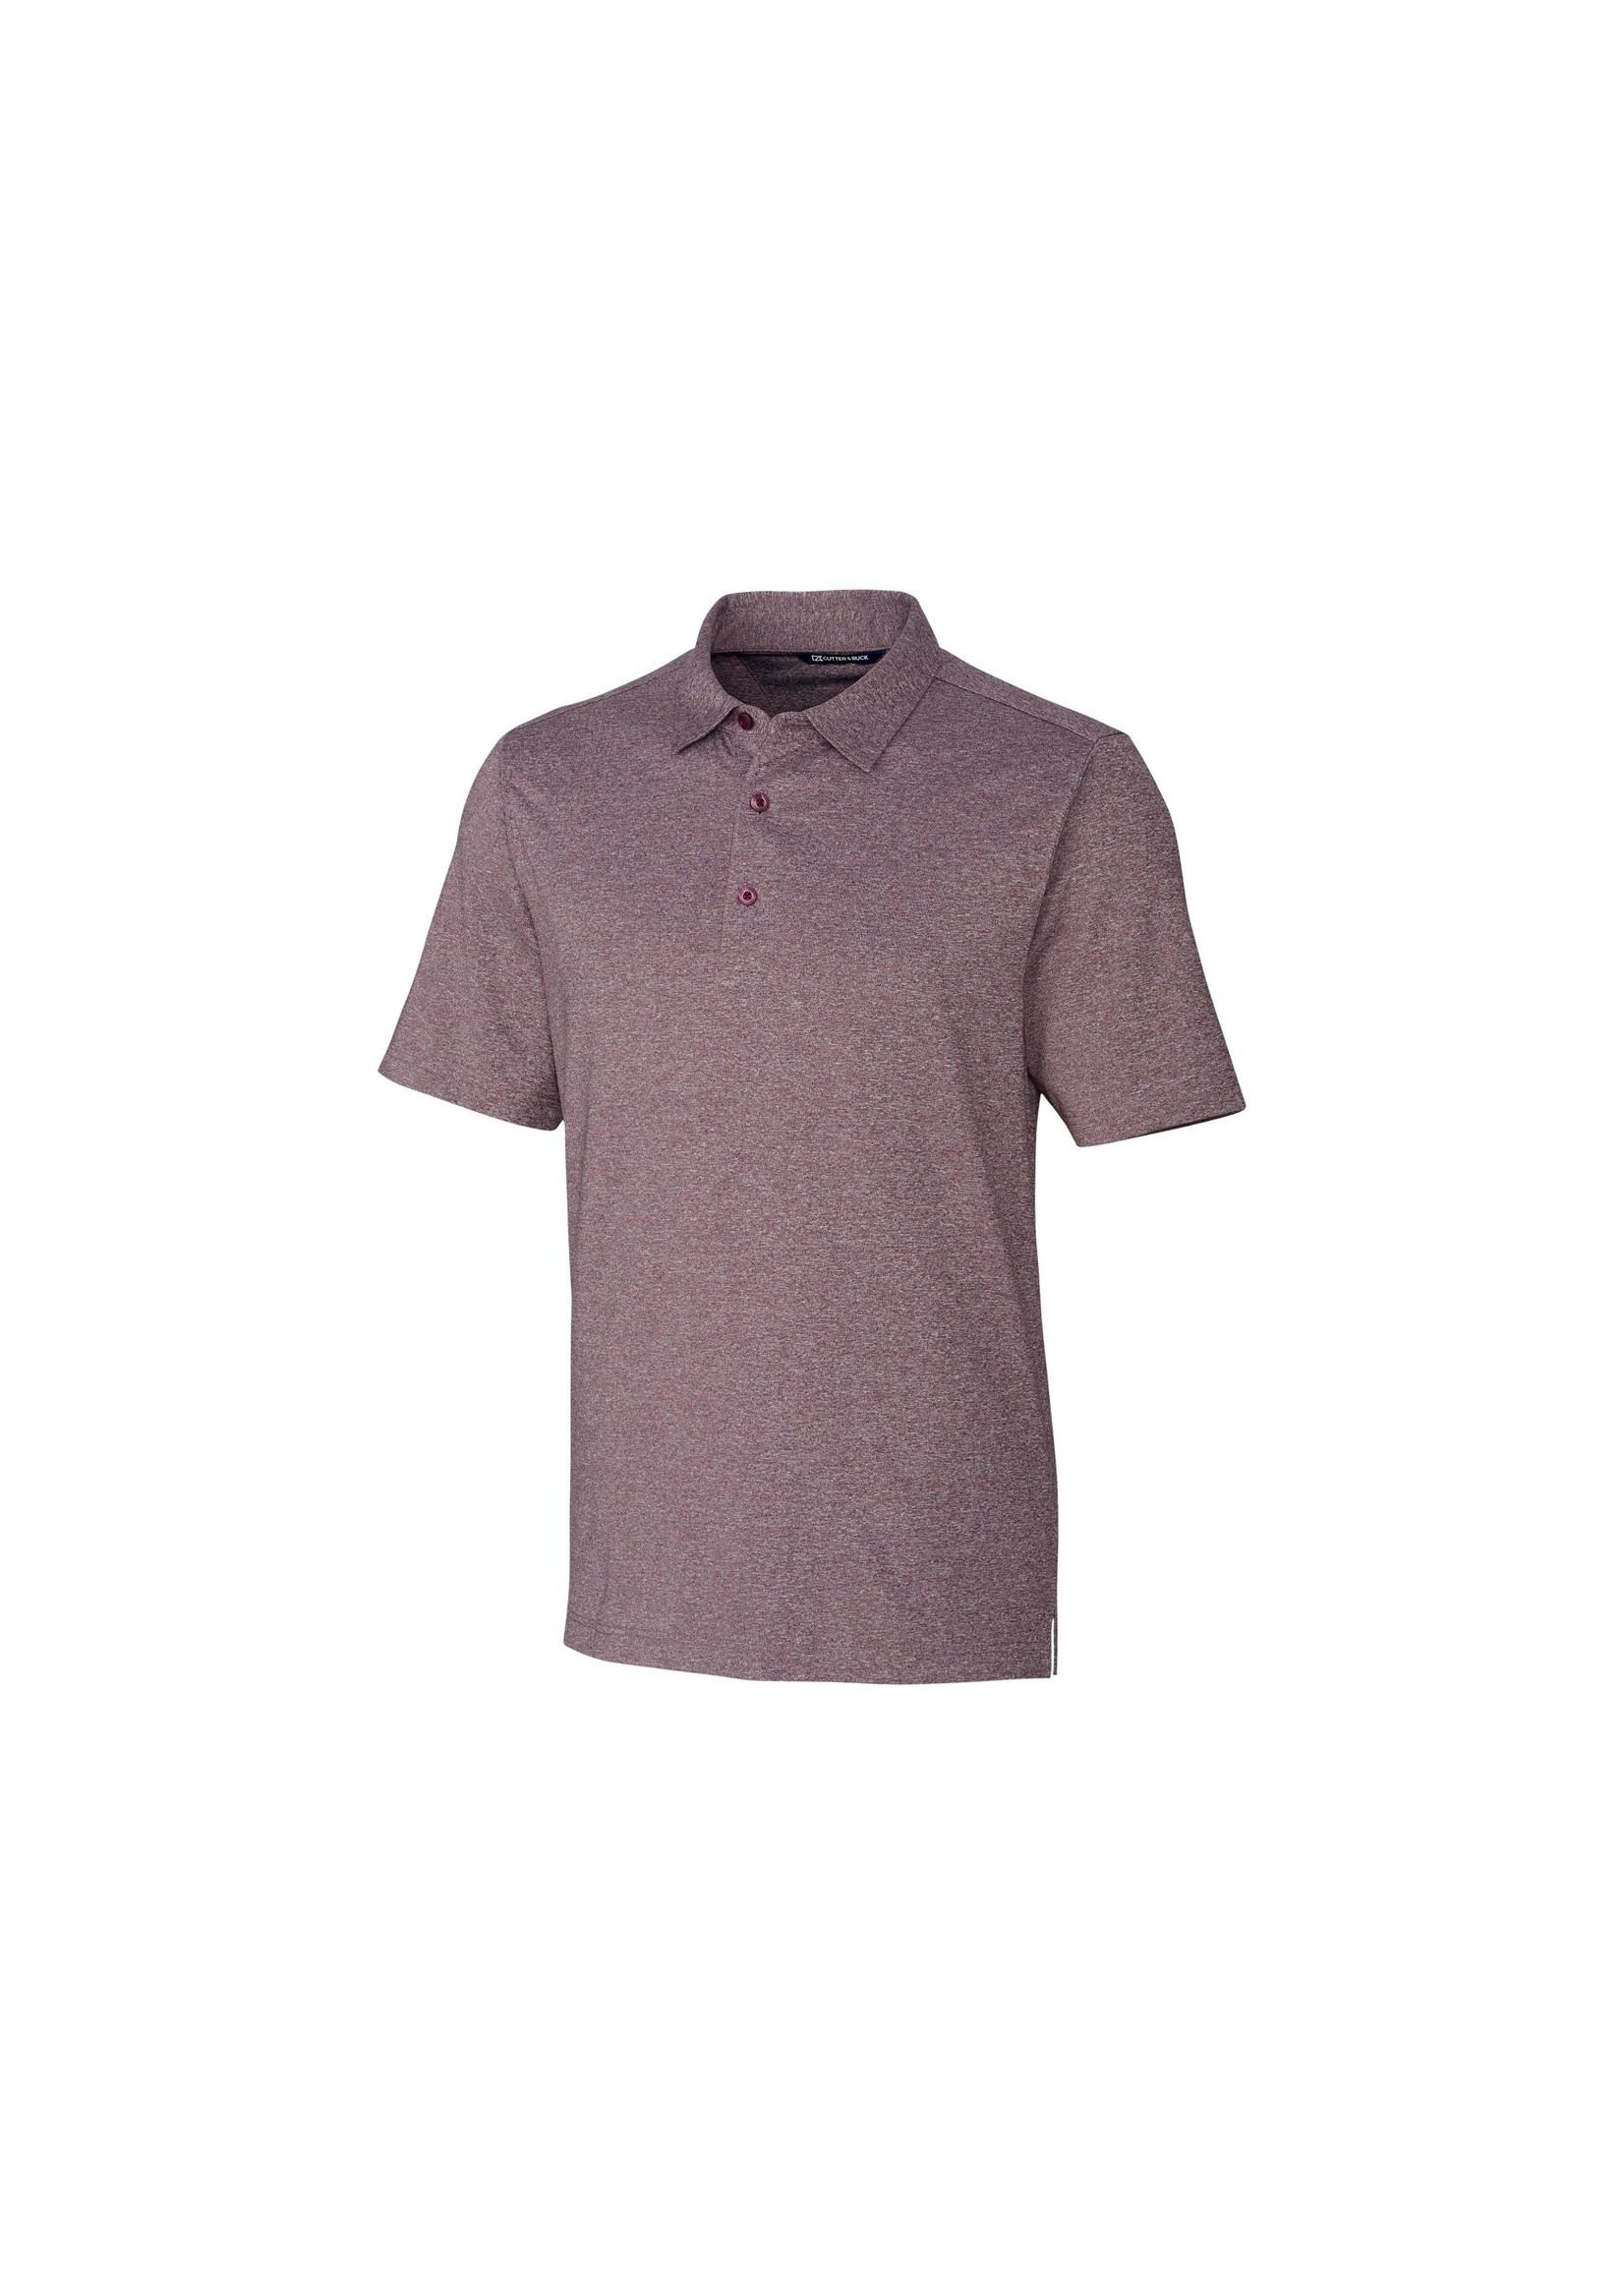 Cutter & Buck The Forge Heathered Stretch Polo by Cutter & Buck